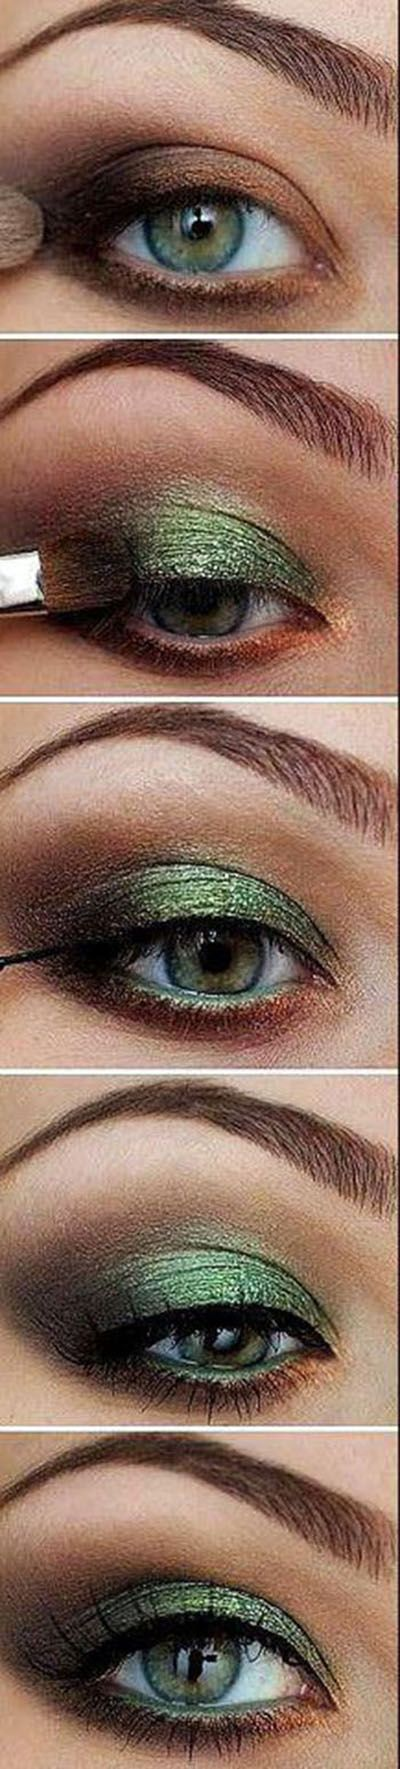 Leaf Green Eye Shadow Tutorial Get this look with Younique! Https://www.youniqueproducts.com/quafran<<<<for when I skate to defying gravity